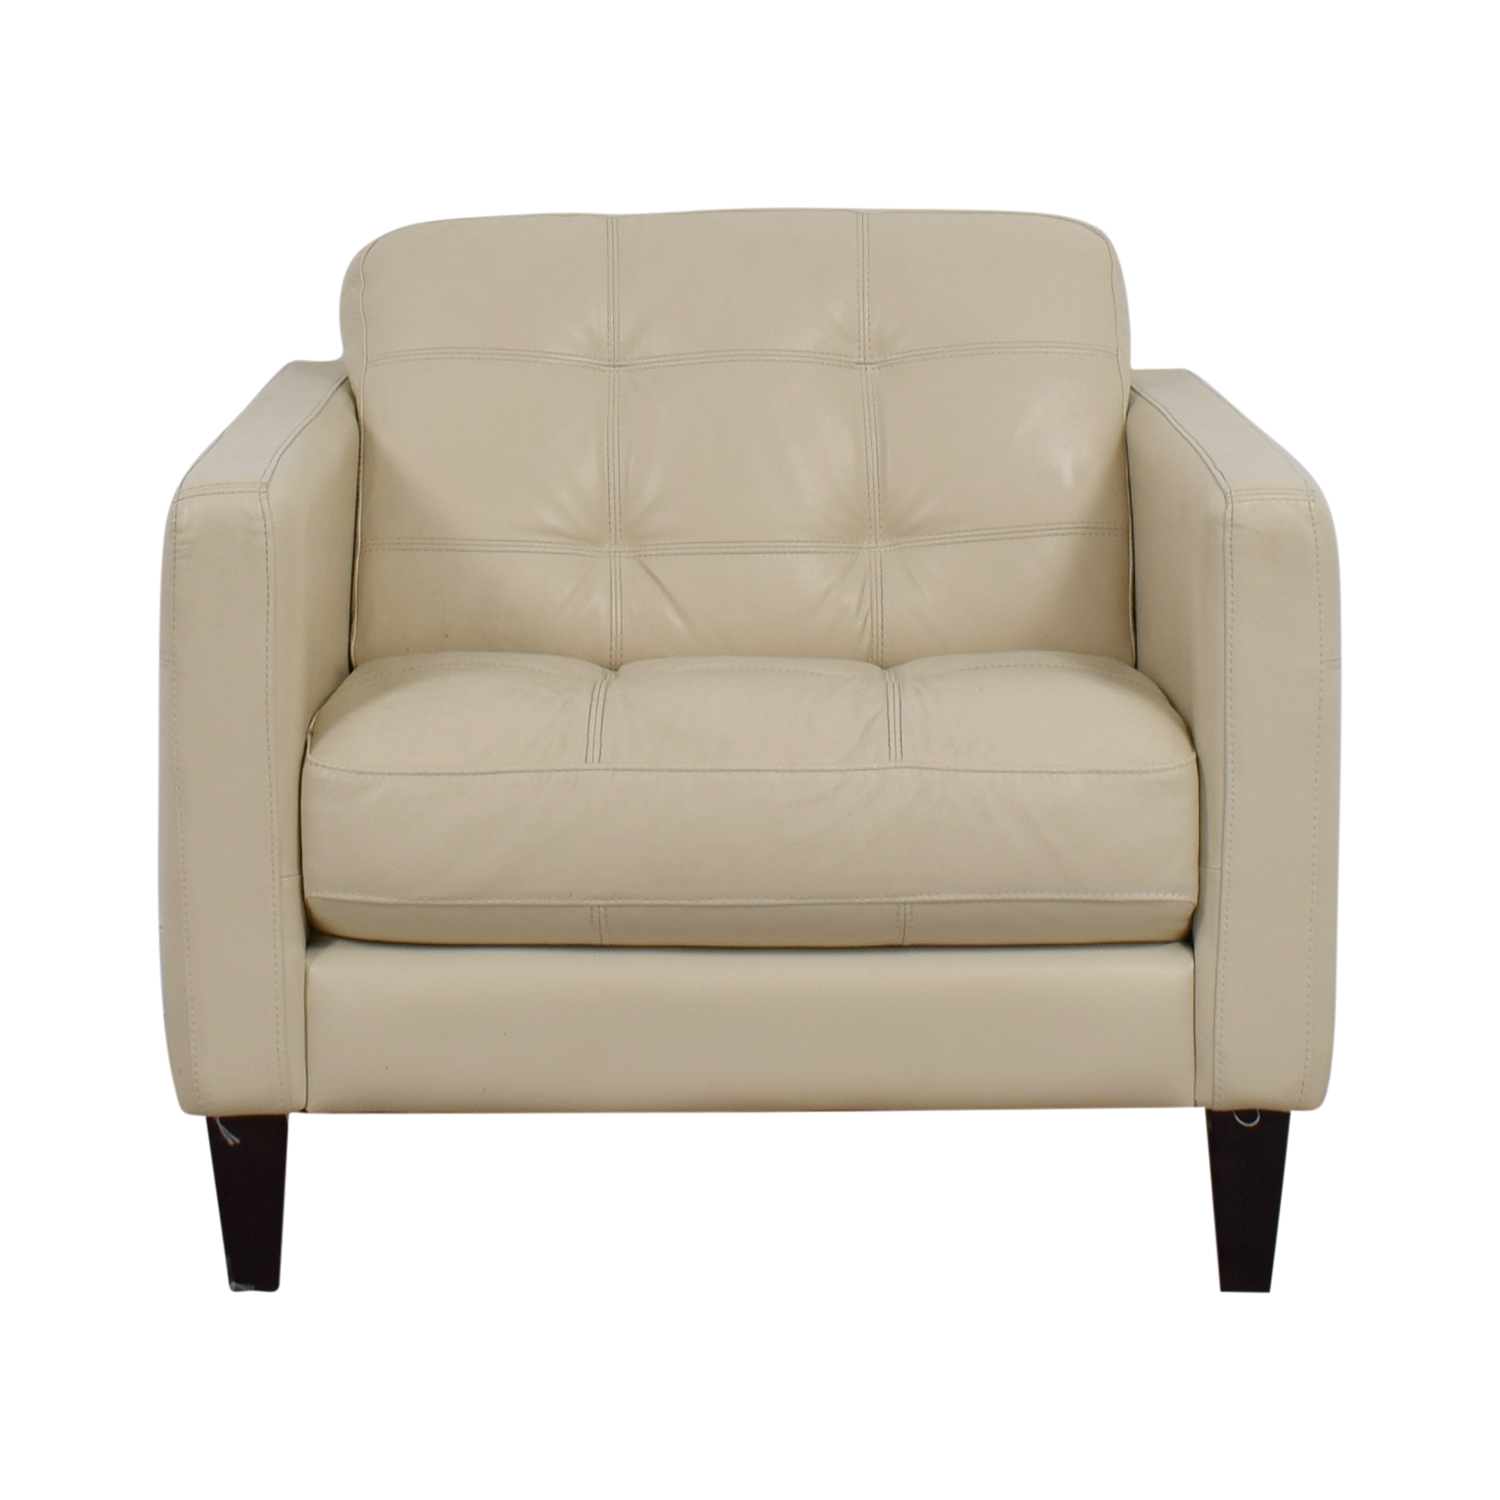 77% OFF - Macy's Macy's Cream Tufted Leather Armchair / Chairs